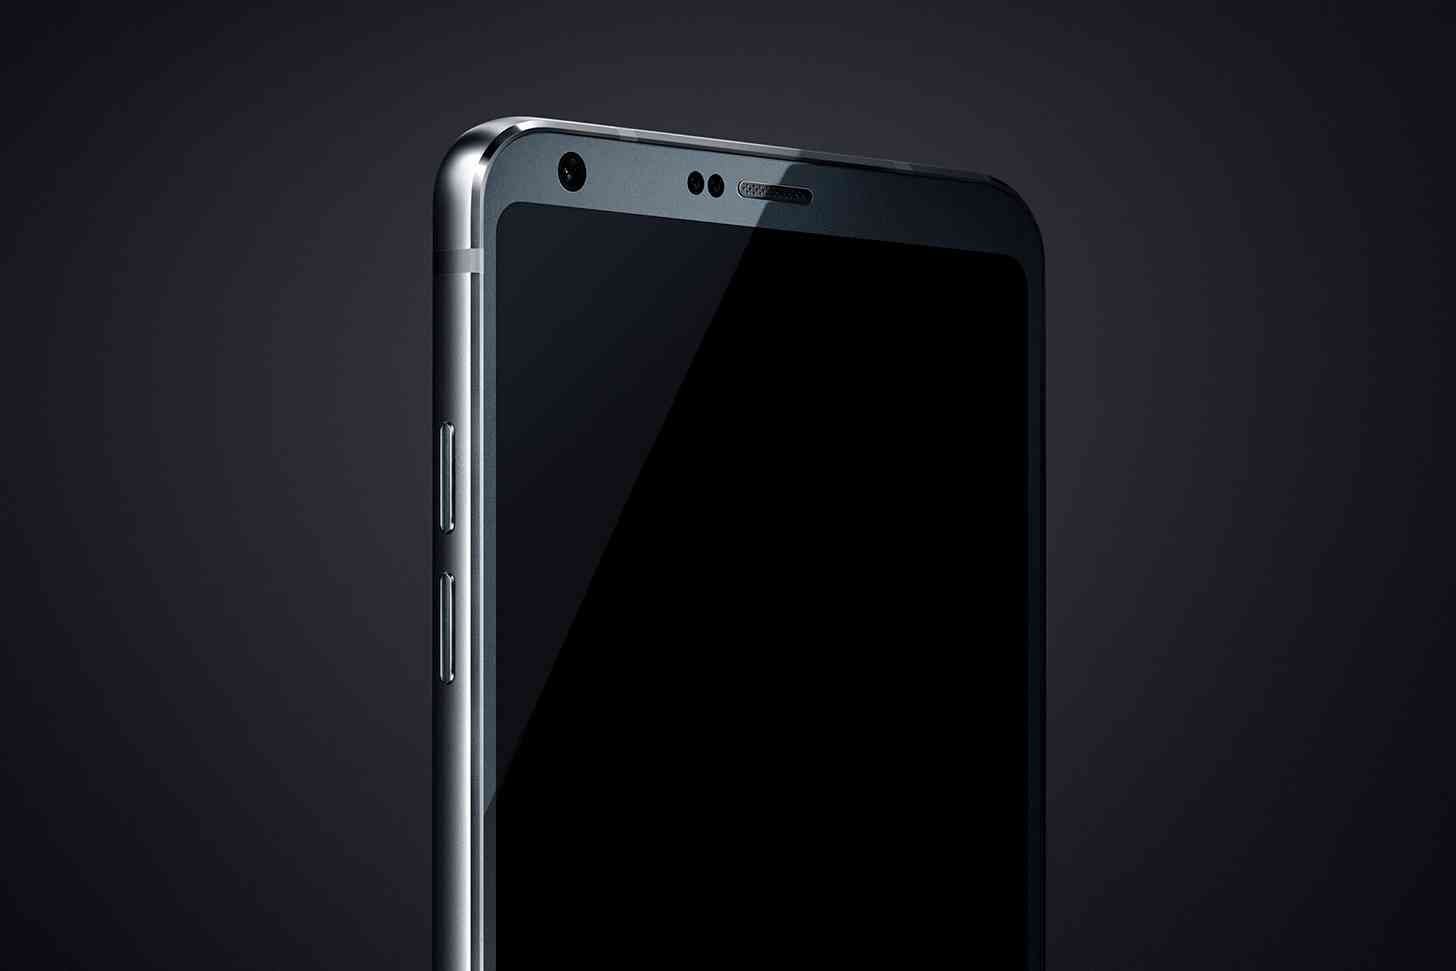 LG G6 image leak gives a peek at the front of the upcoming Android flagship